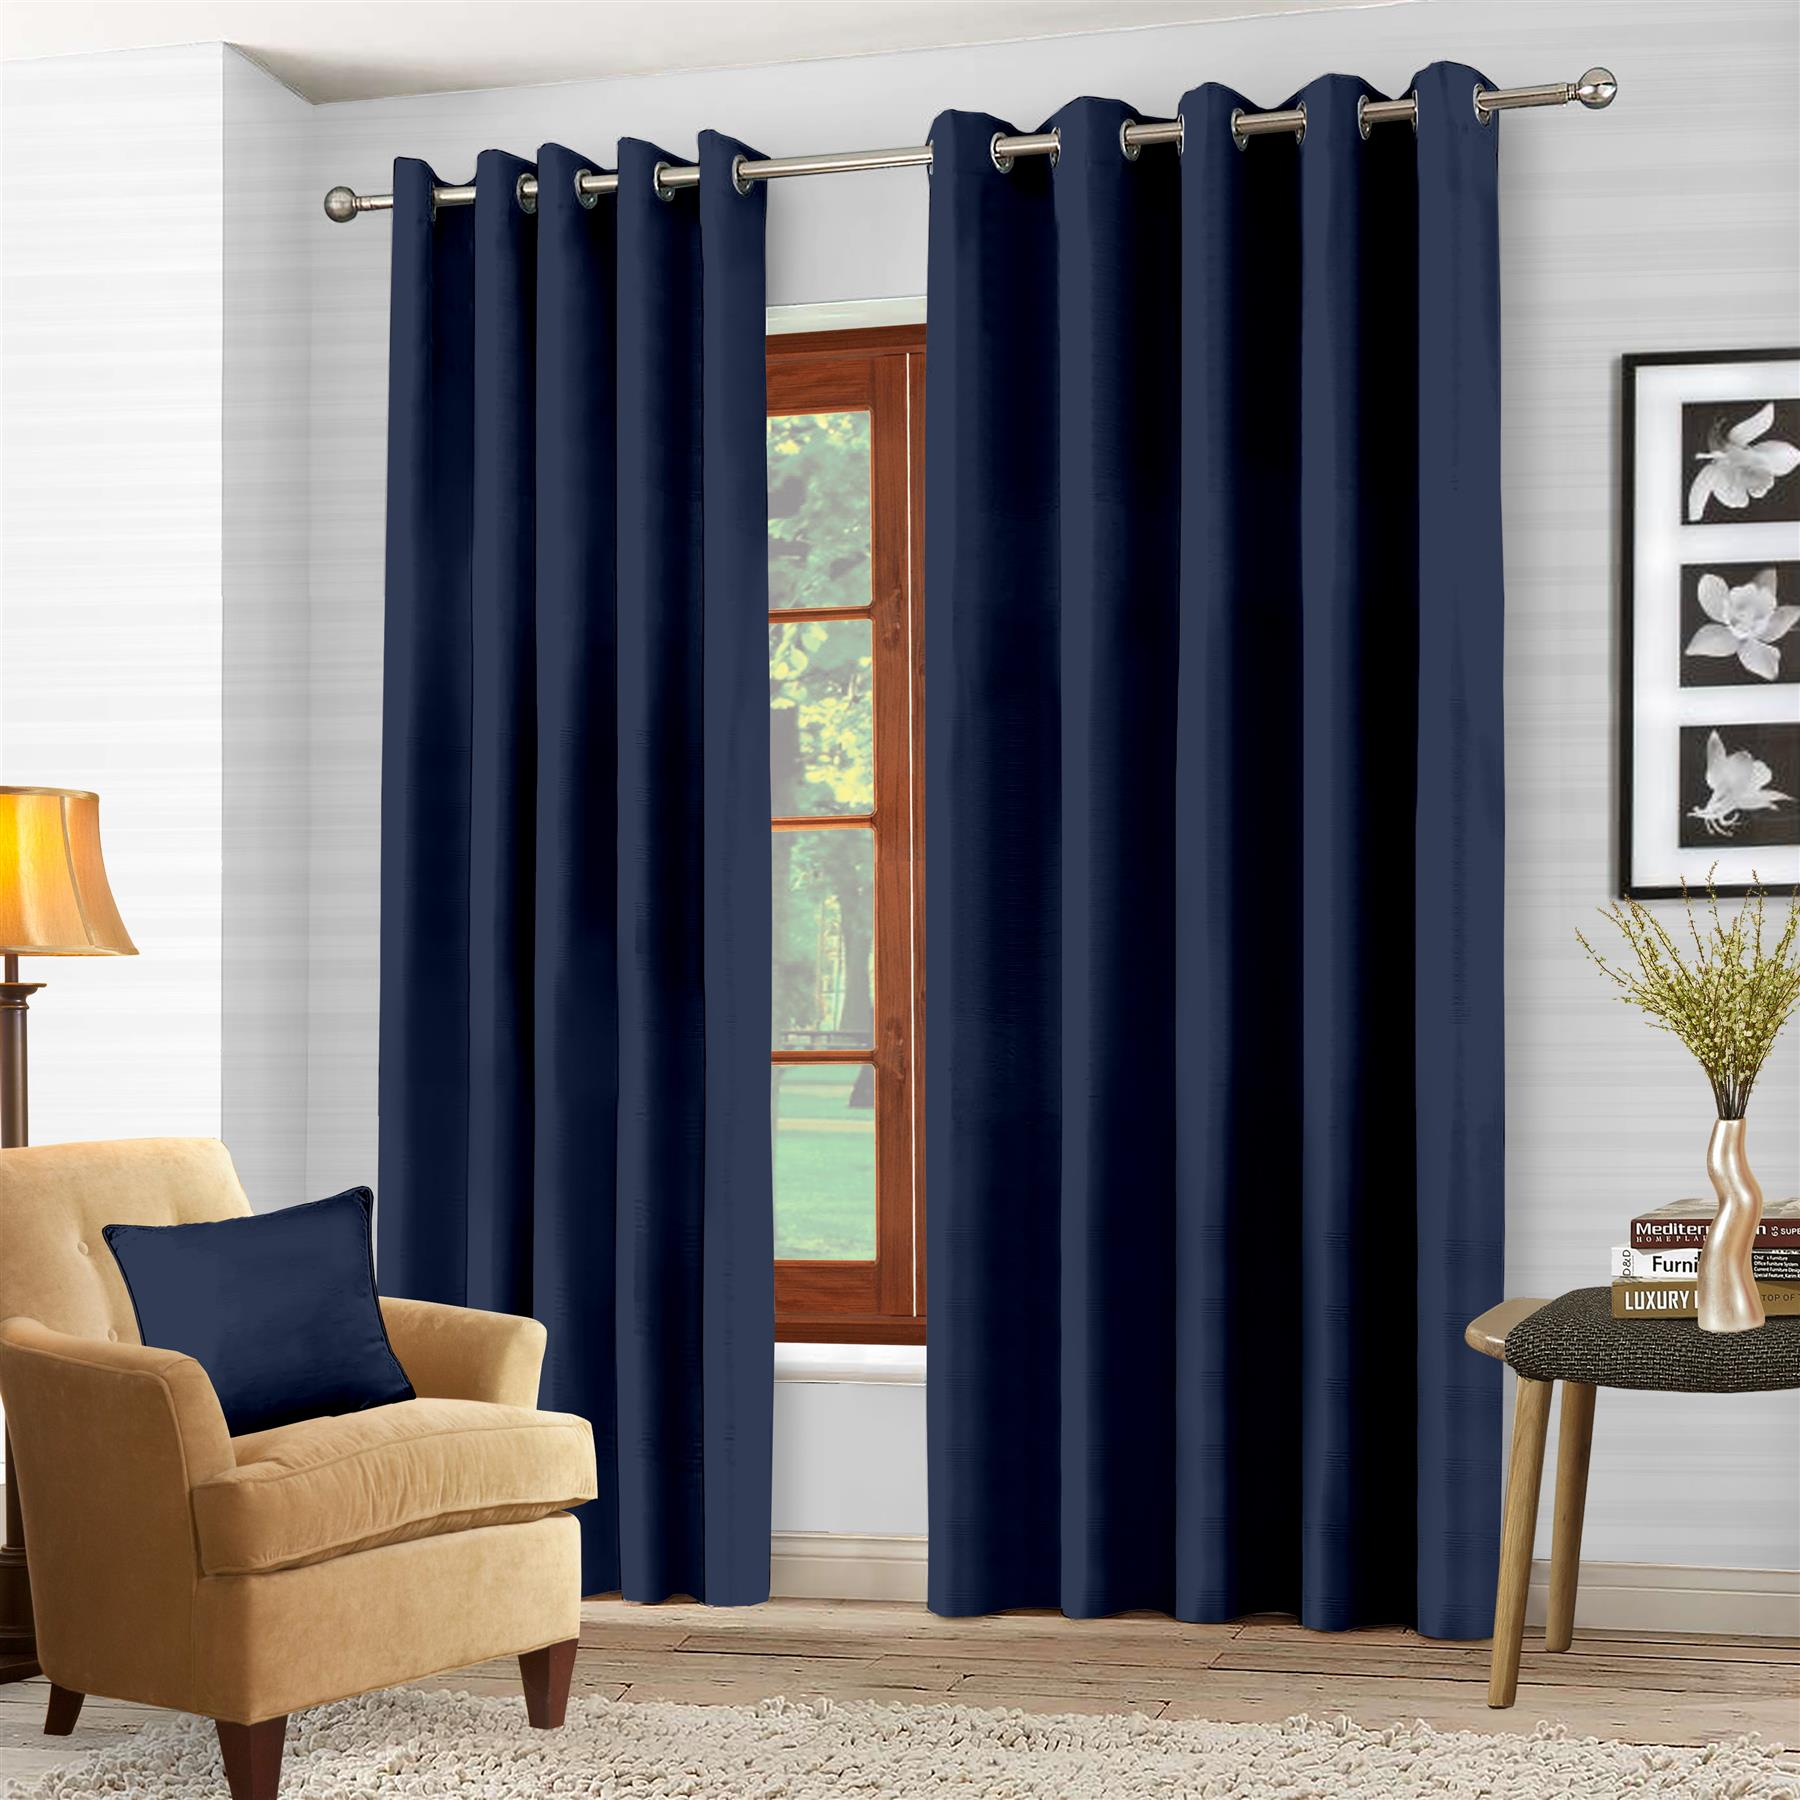 Luxury-Thermal-Blackout-Eyelet-Ring-Top-Curtains-Pair-with-tie-backs thumbnail 30